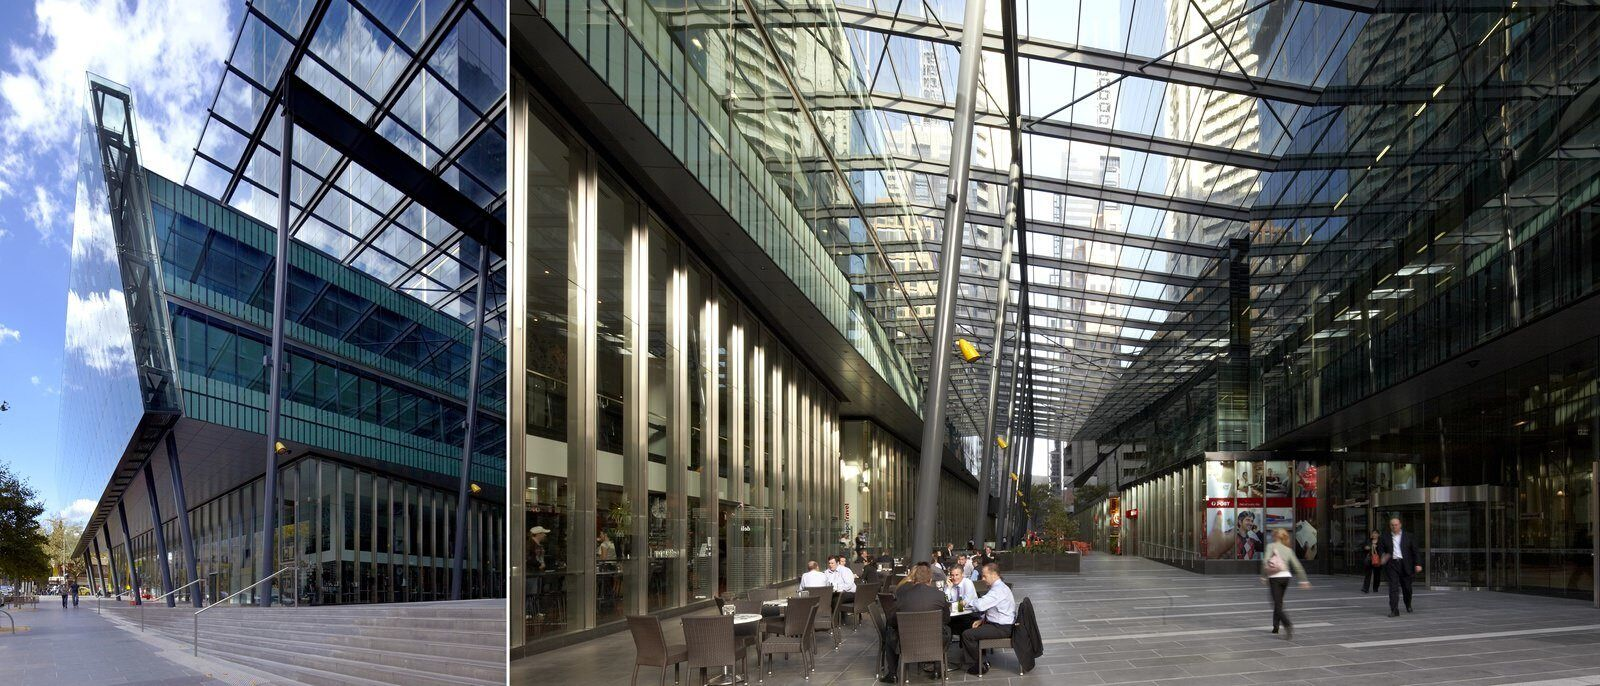 A large area between buildings has many business people in suits doing work on laptops.